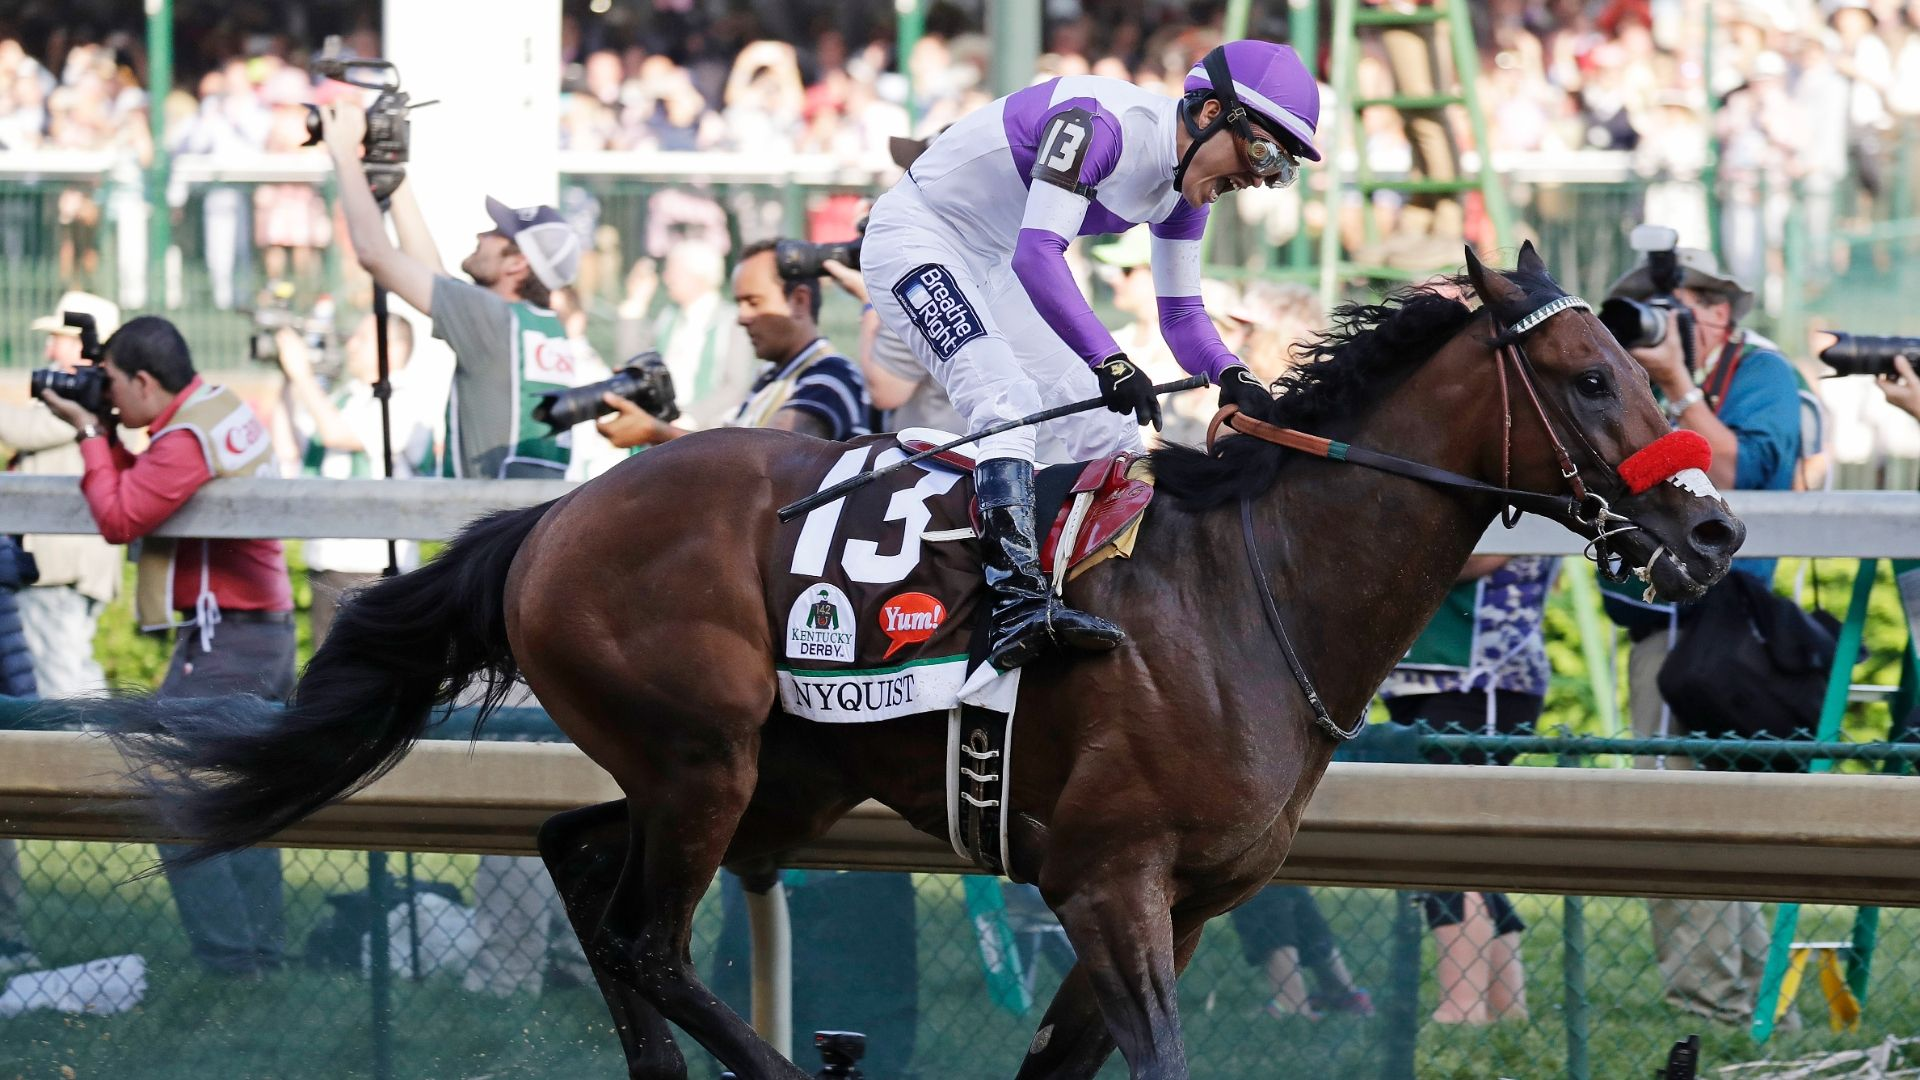 Nyquist's trainer: He's a super horse